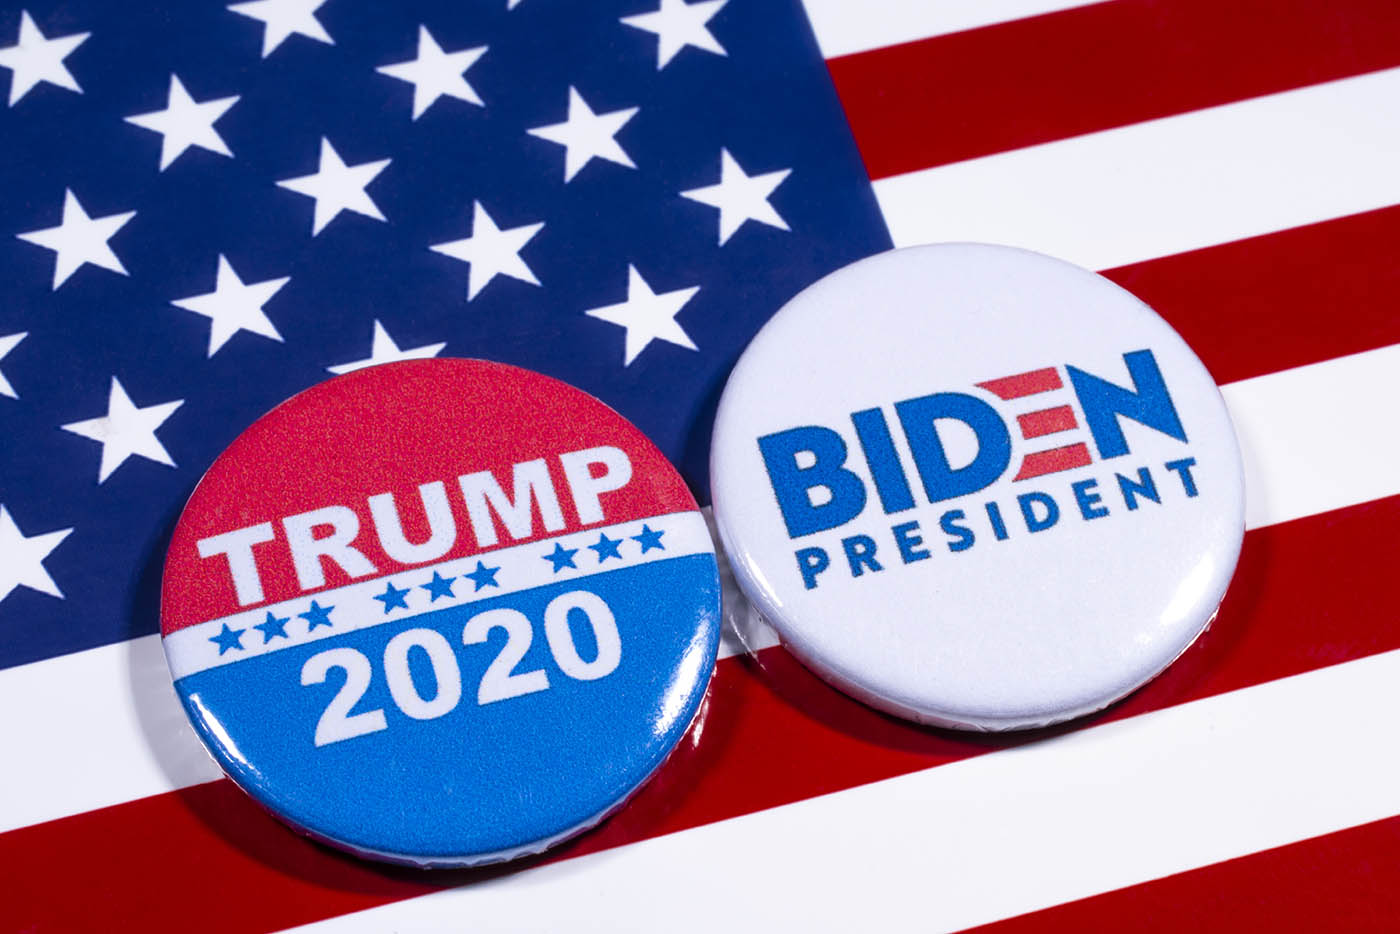 US election pins for Trump and Biden